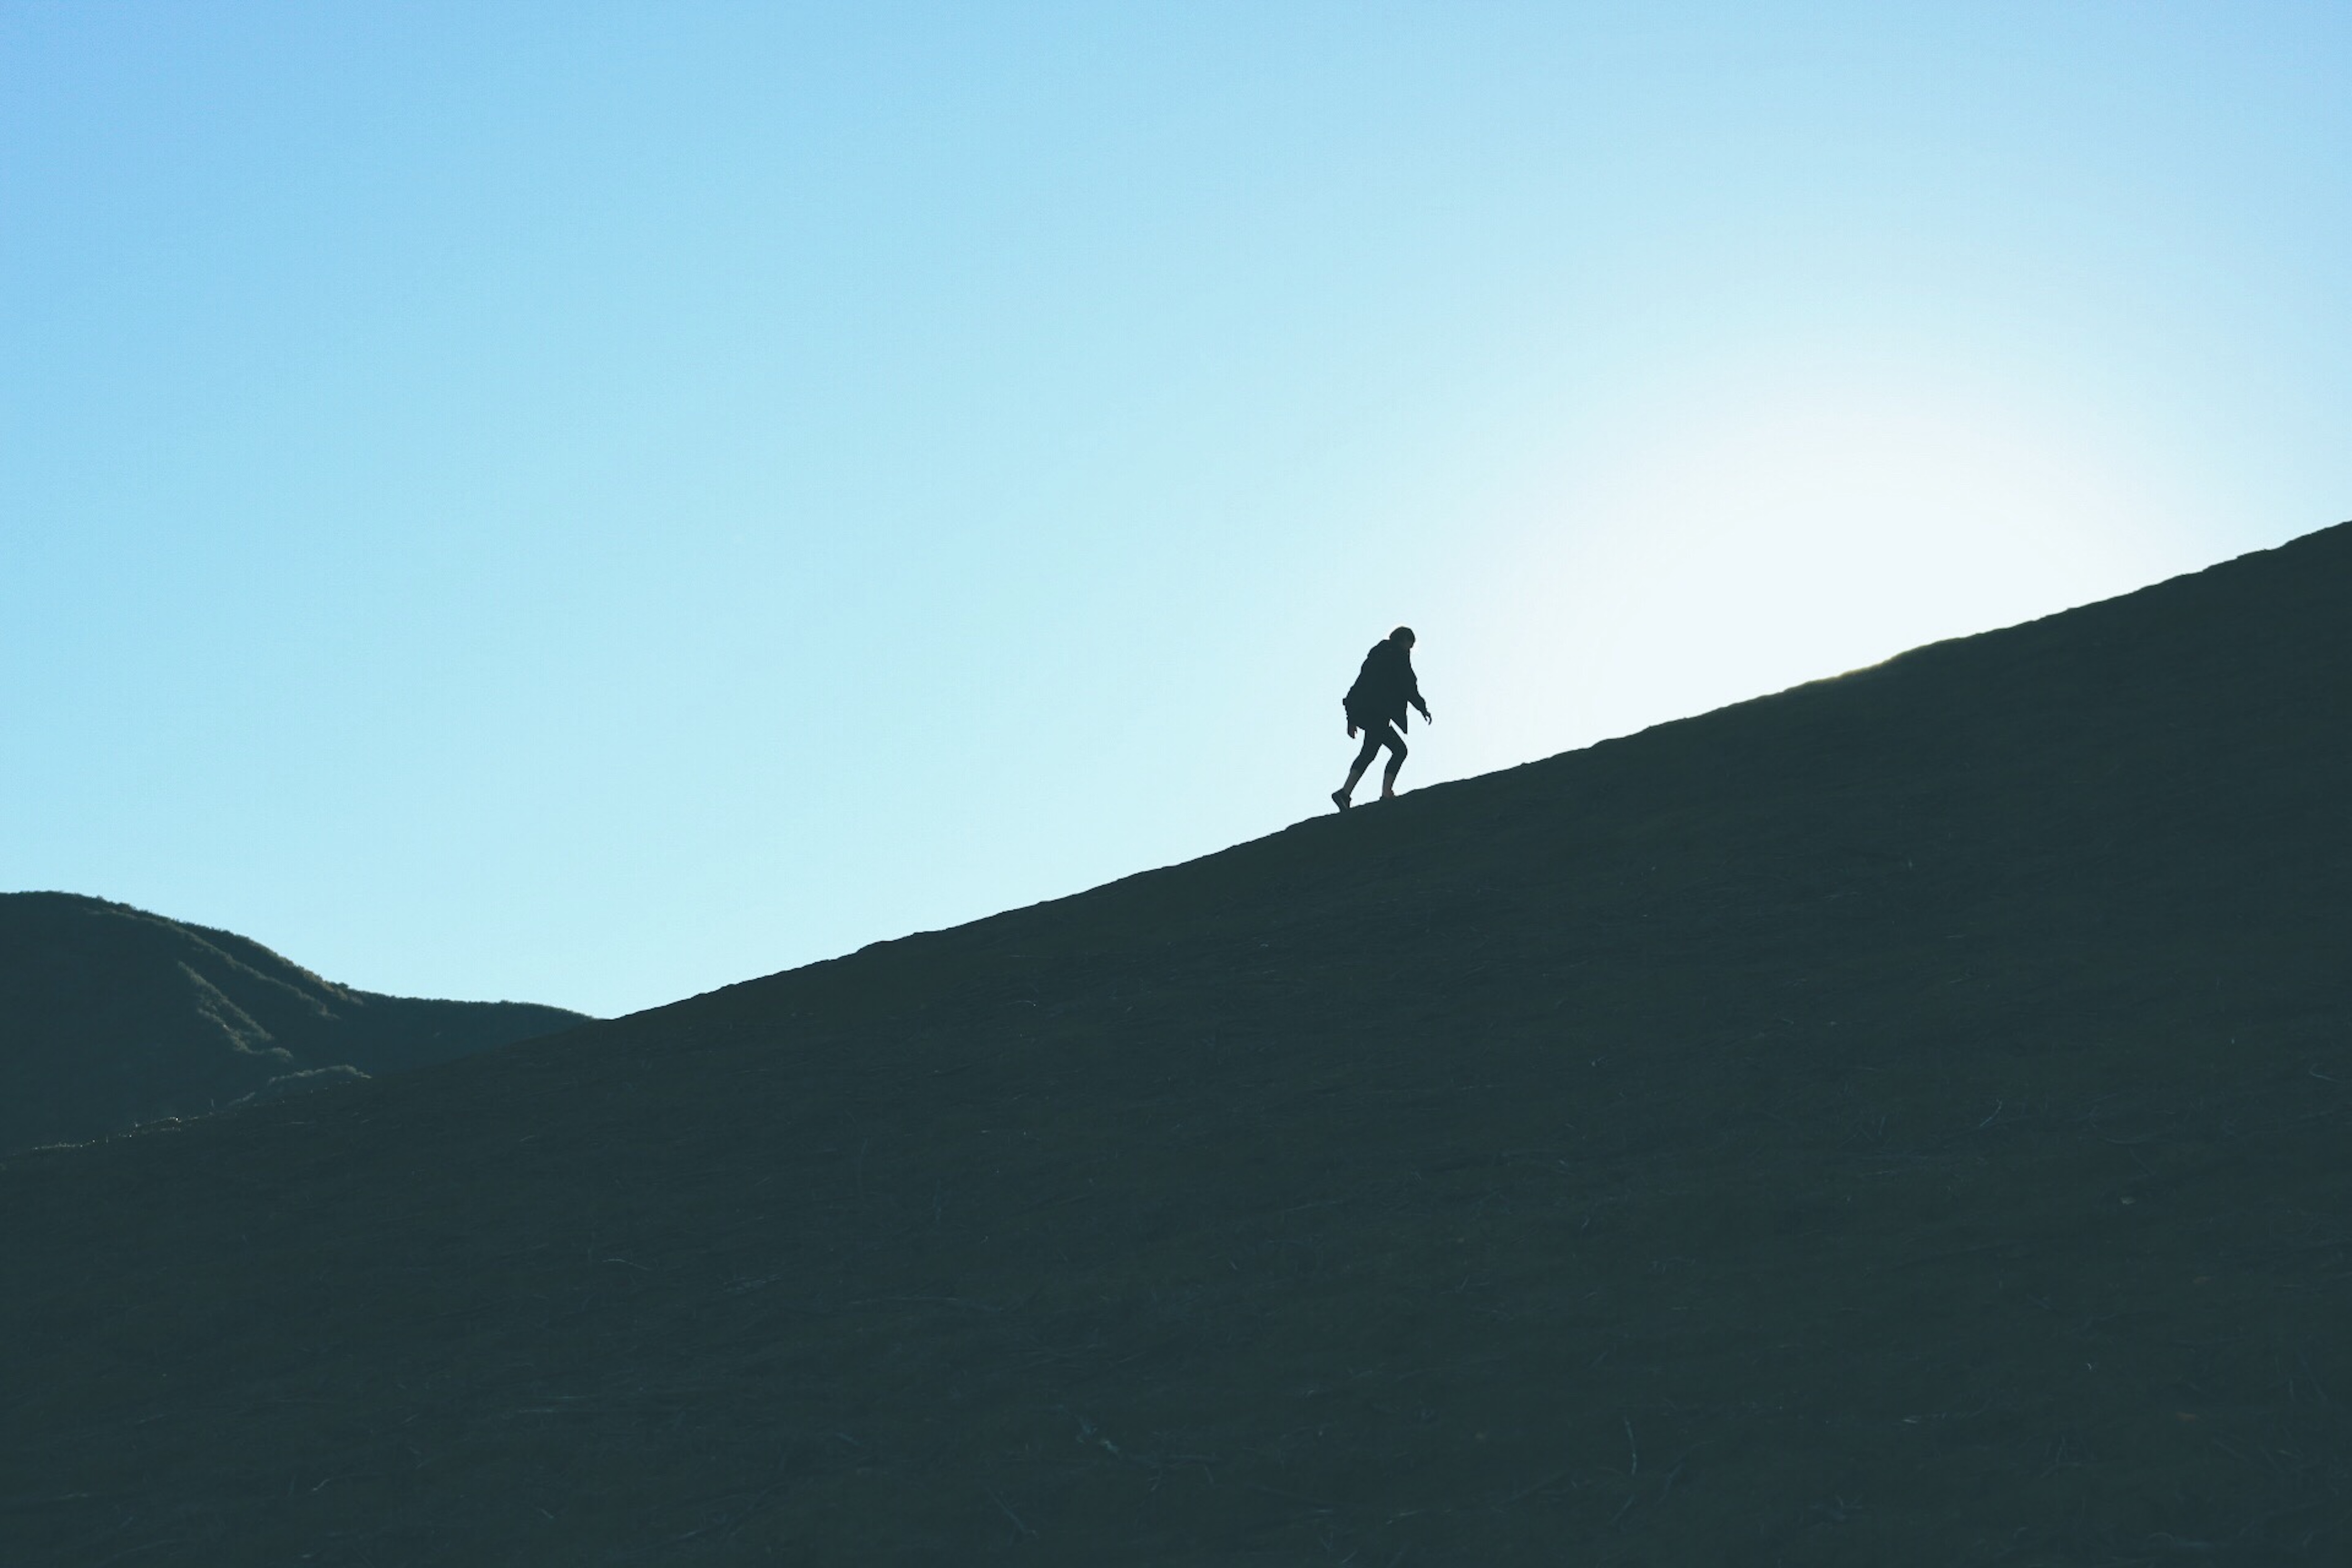 silhouette of man climbing hill